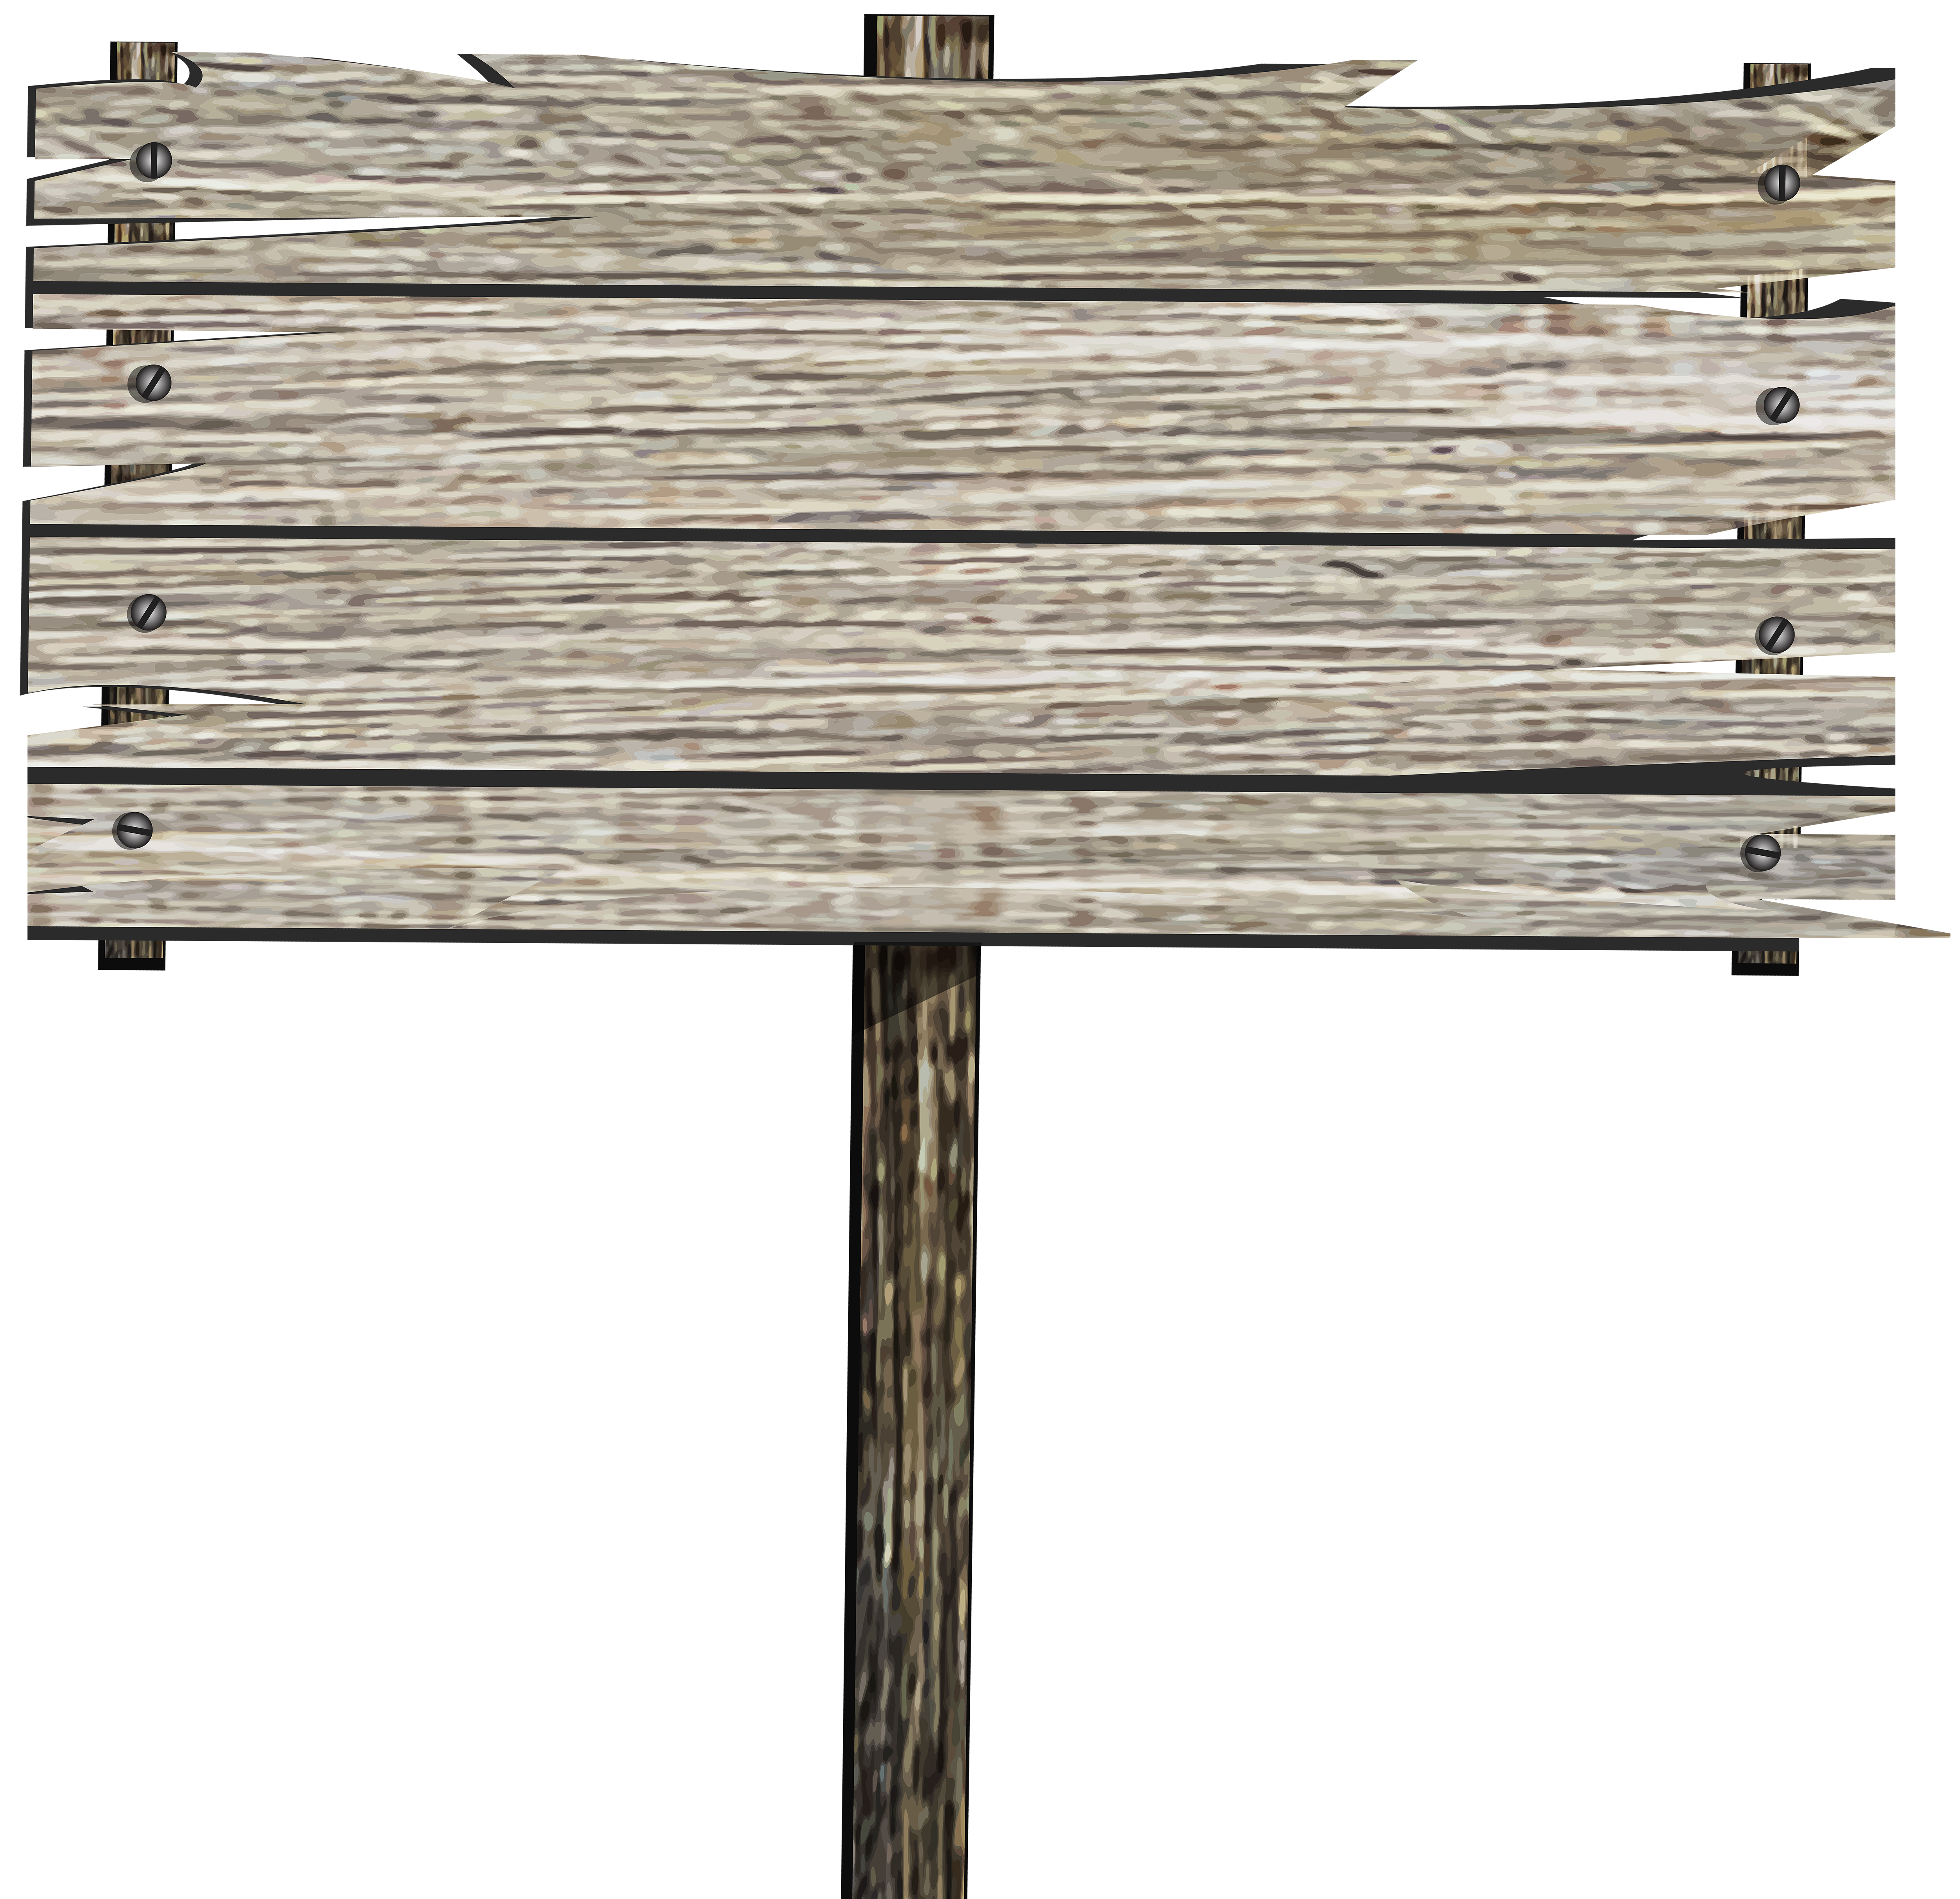 Clipart table old table. Wooden sign png clip